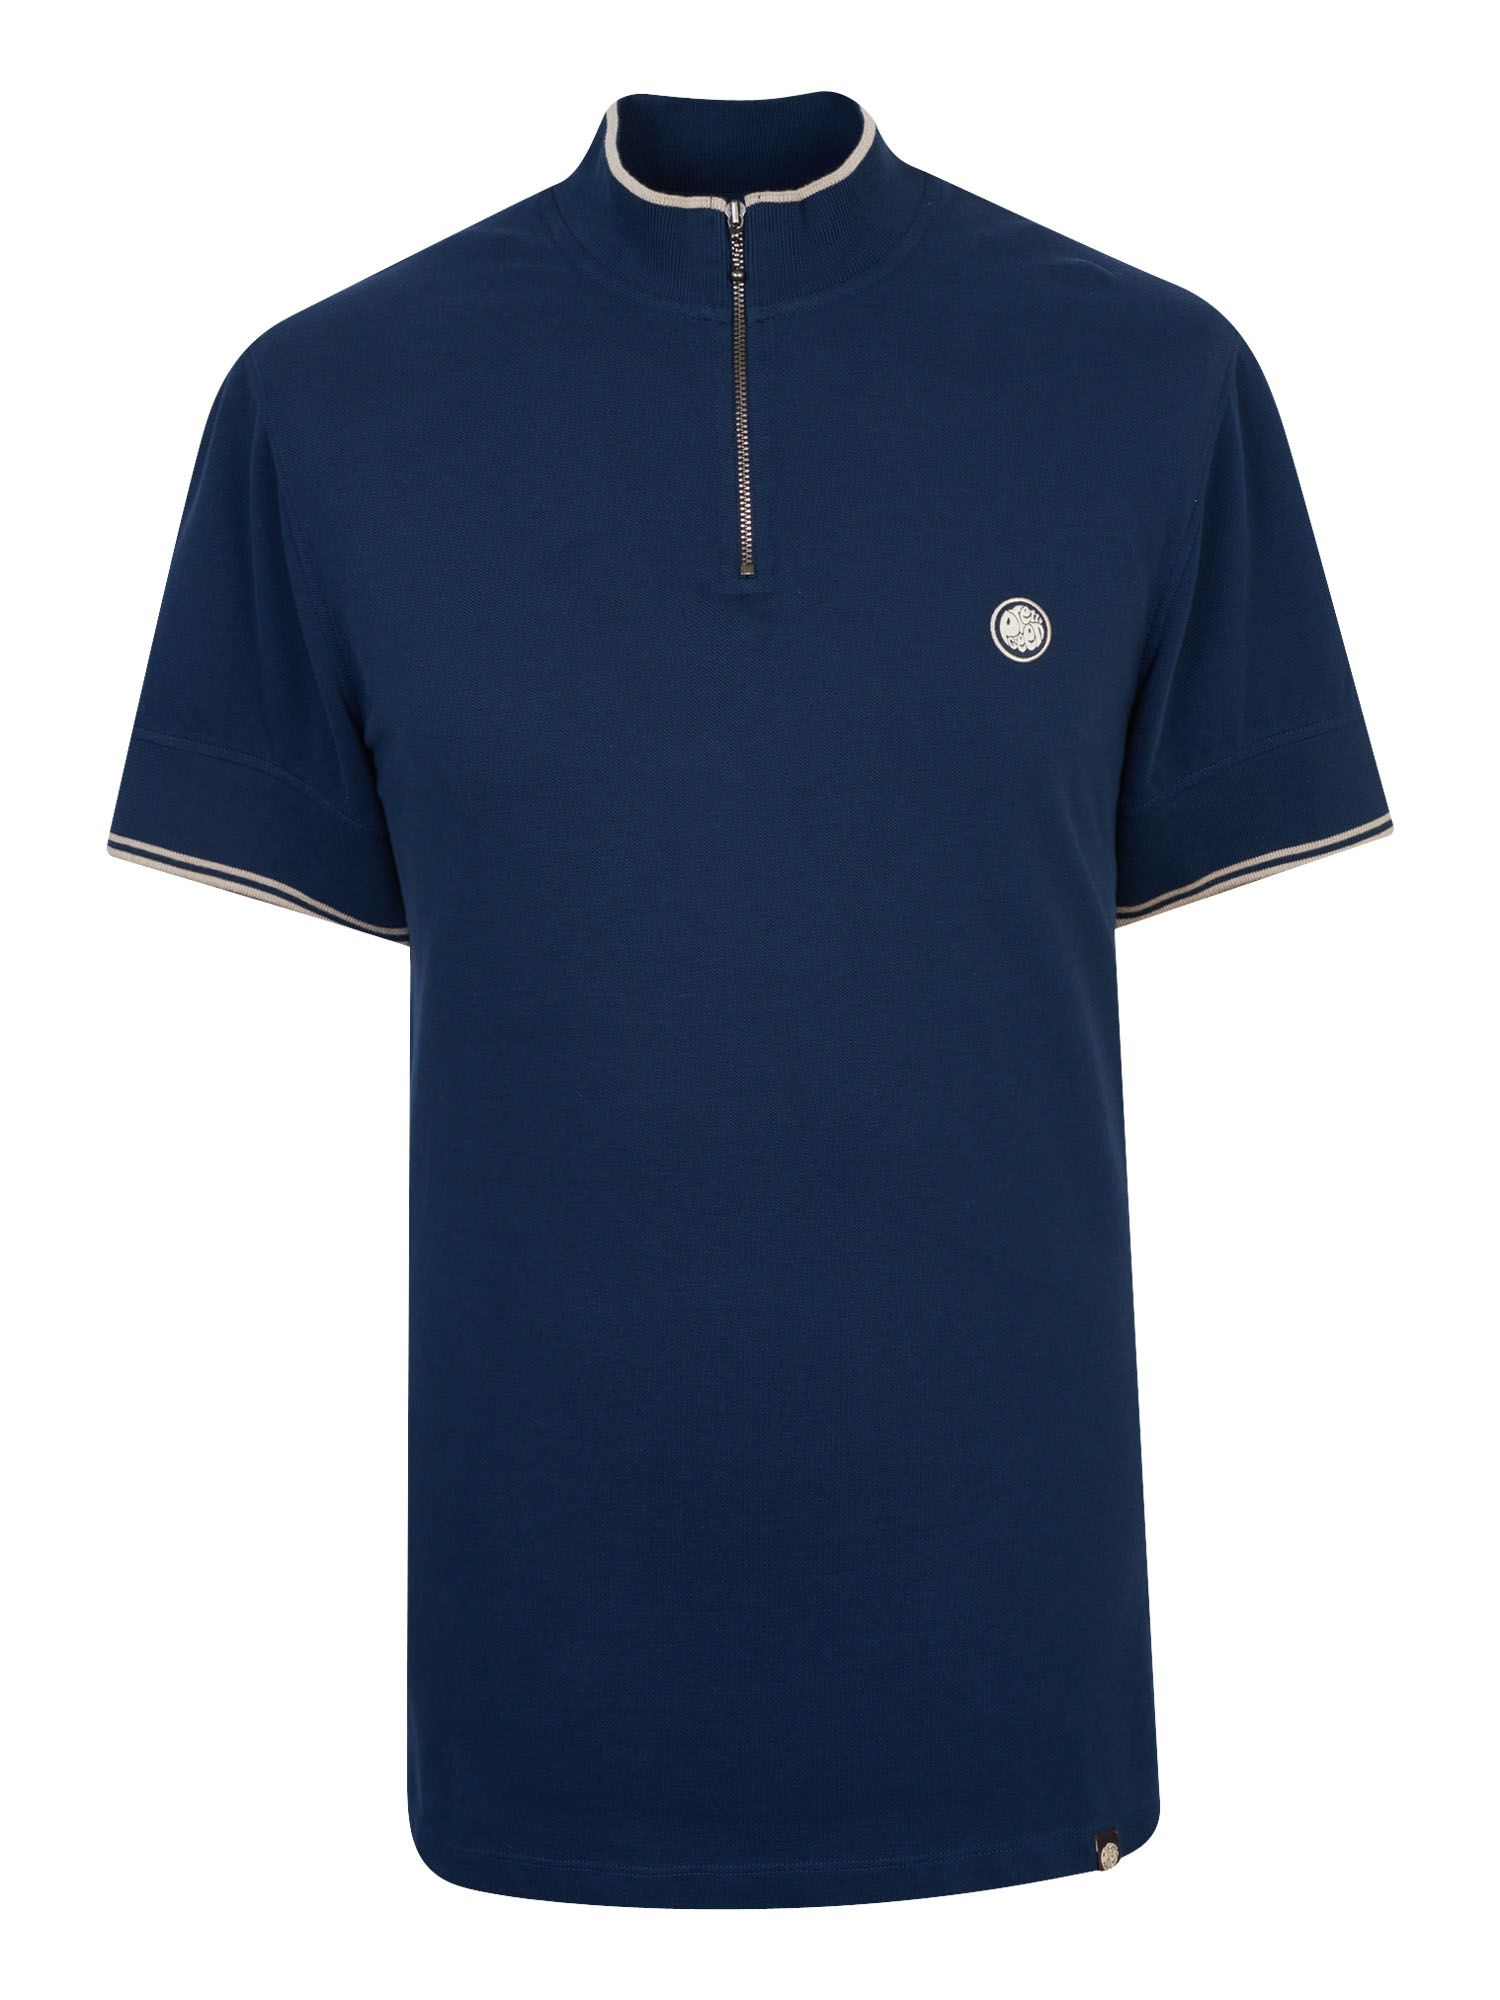 Men's Pretty Green Pique Zip Up T-Shirt, Blue